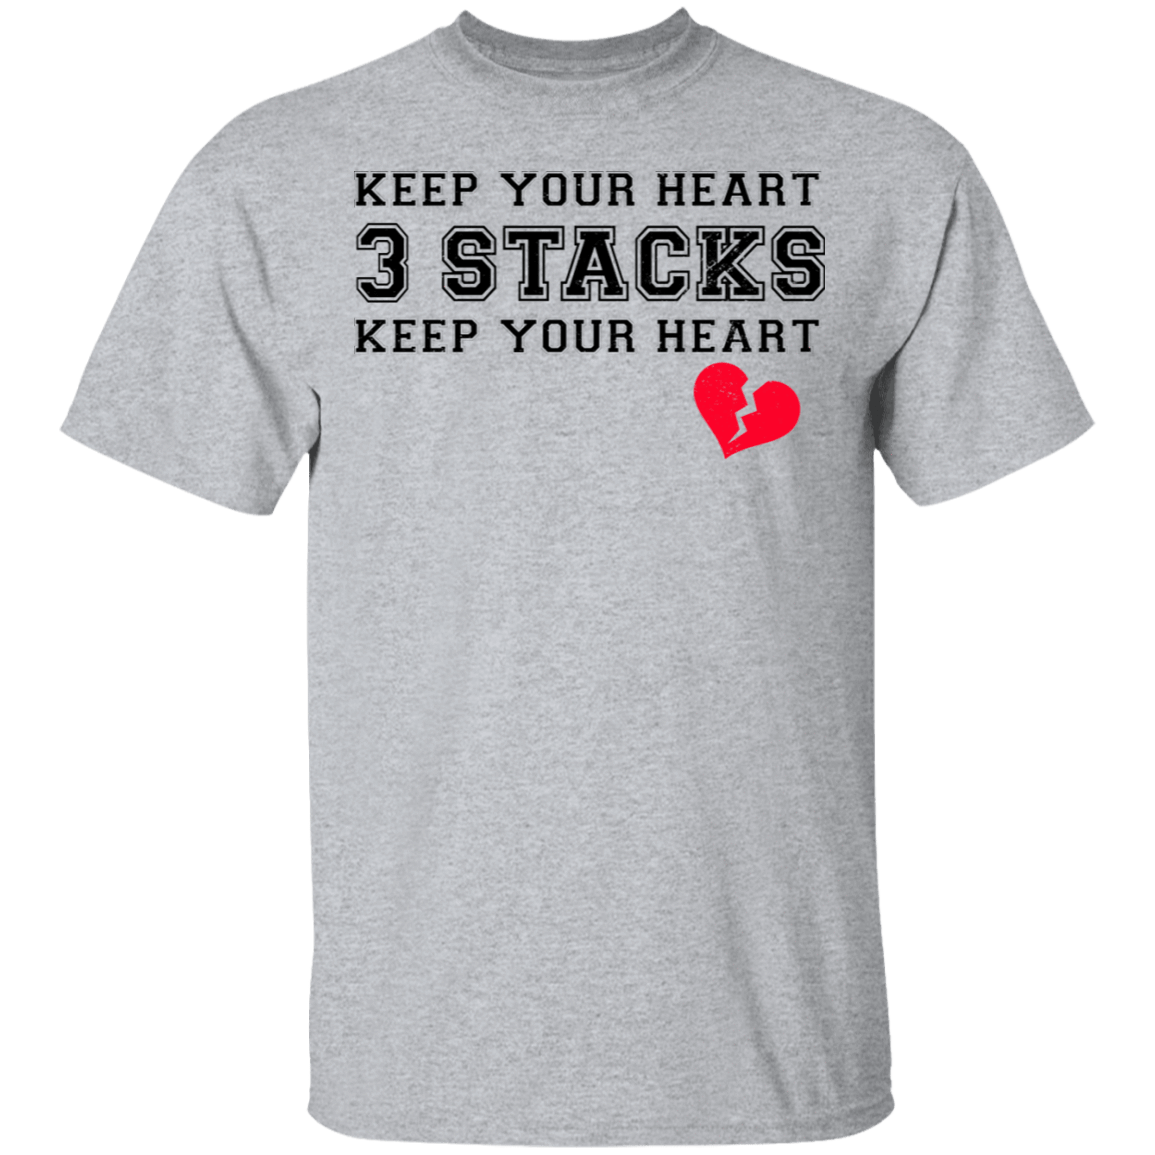 Keep Your Heart 3 Stacks T-Shirts, Hoodies 22-115-80183506-254 - Tee Ript